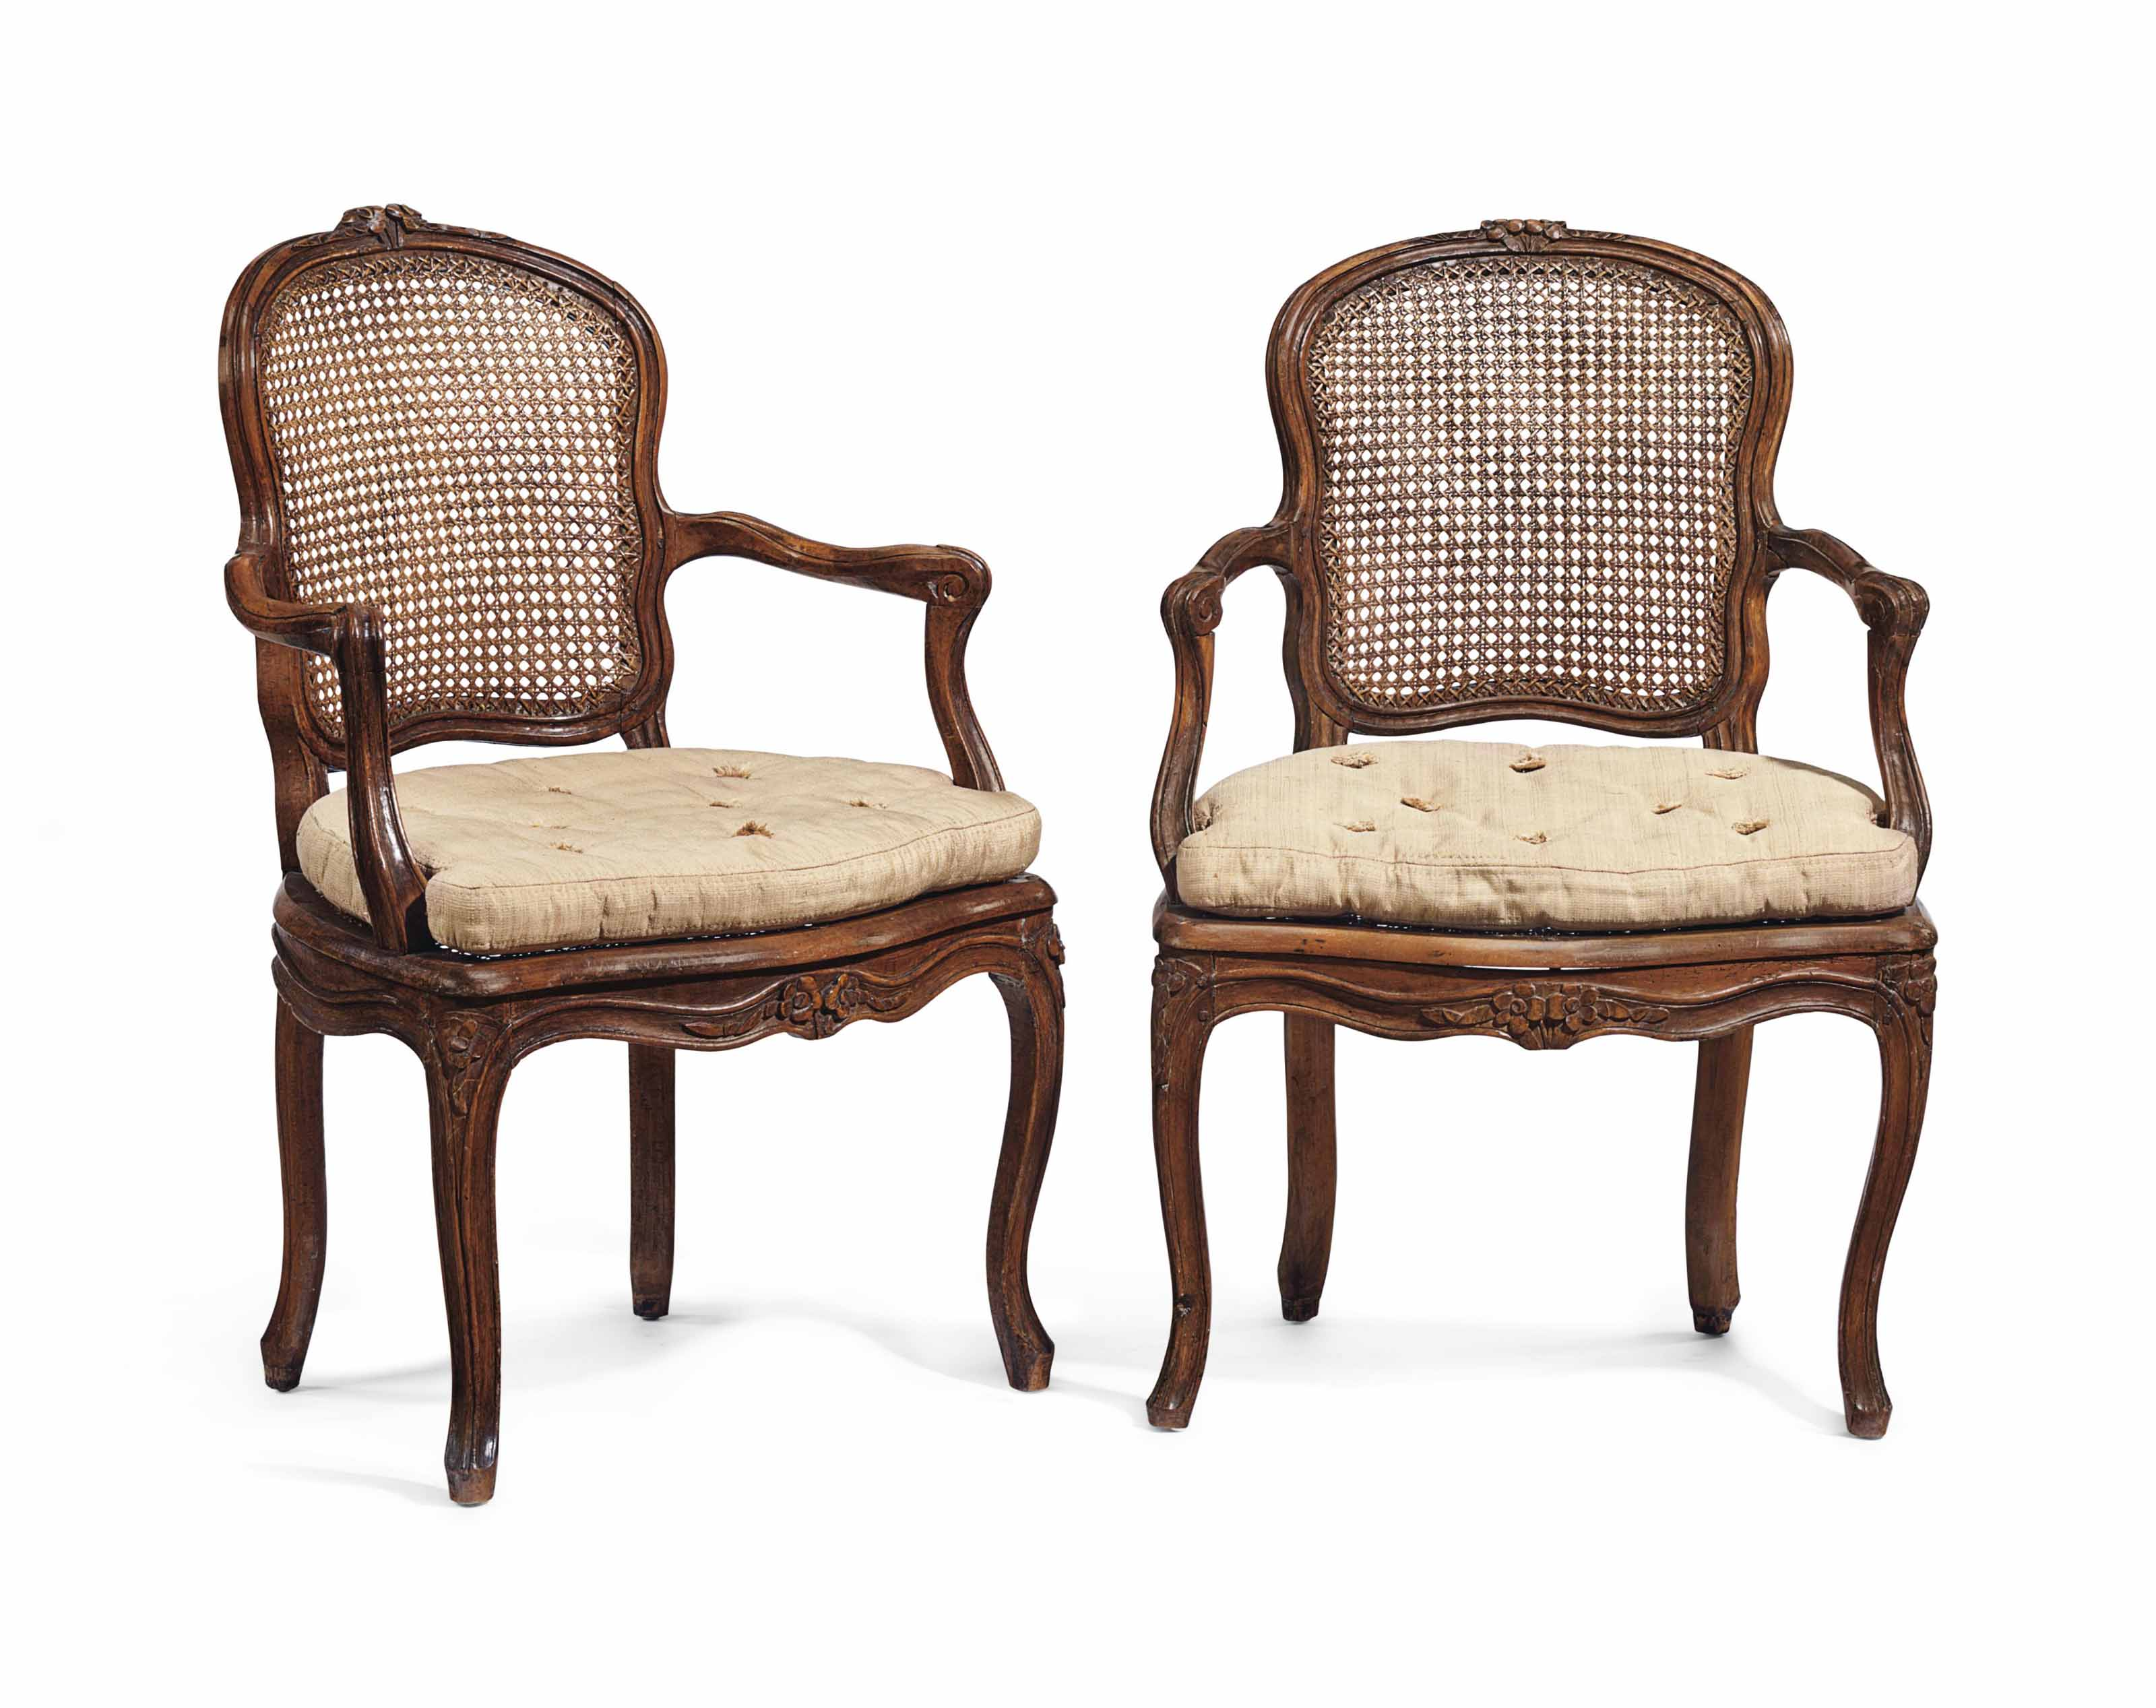 4 Fauteuils Louis Xv A Pair Of Louis Xv Beechwood And Caned Fauteuils By